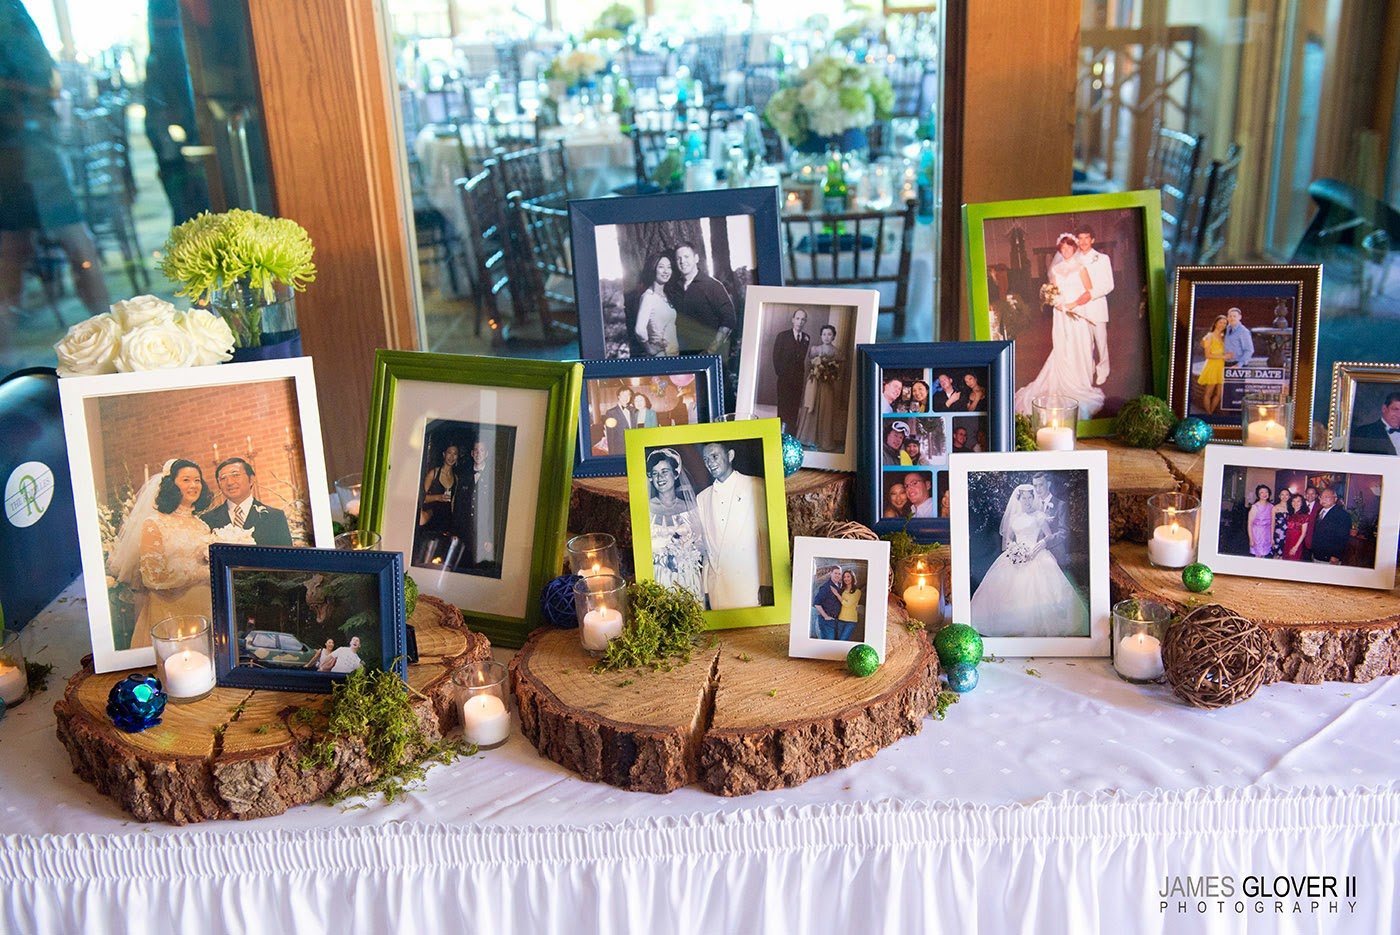 Rustic Wedding Family Photo Display | James Glover Photography | Take the Cake Events